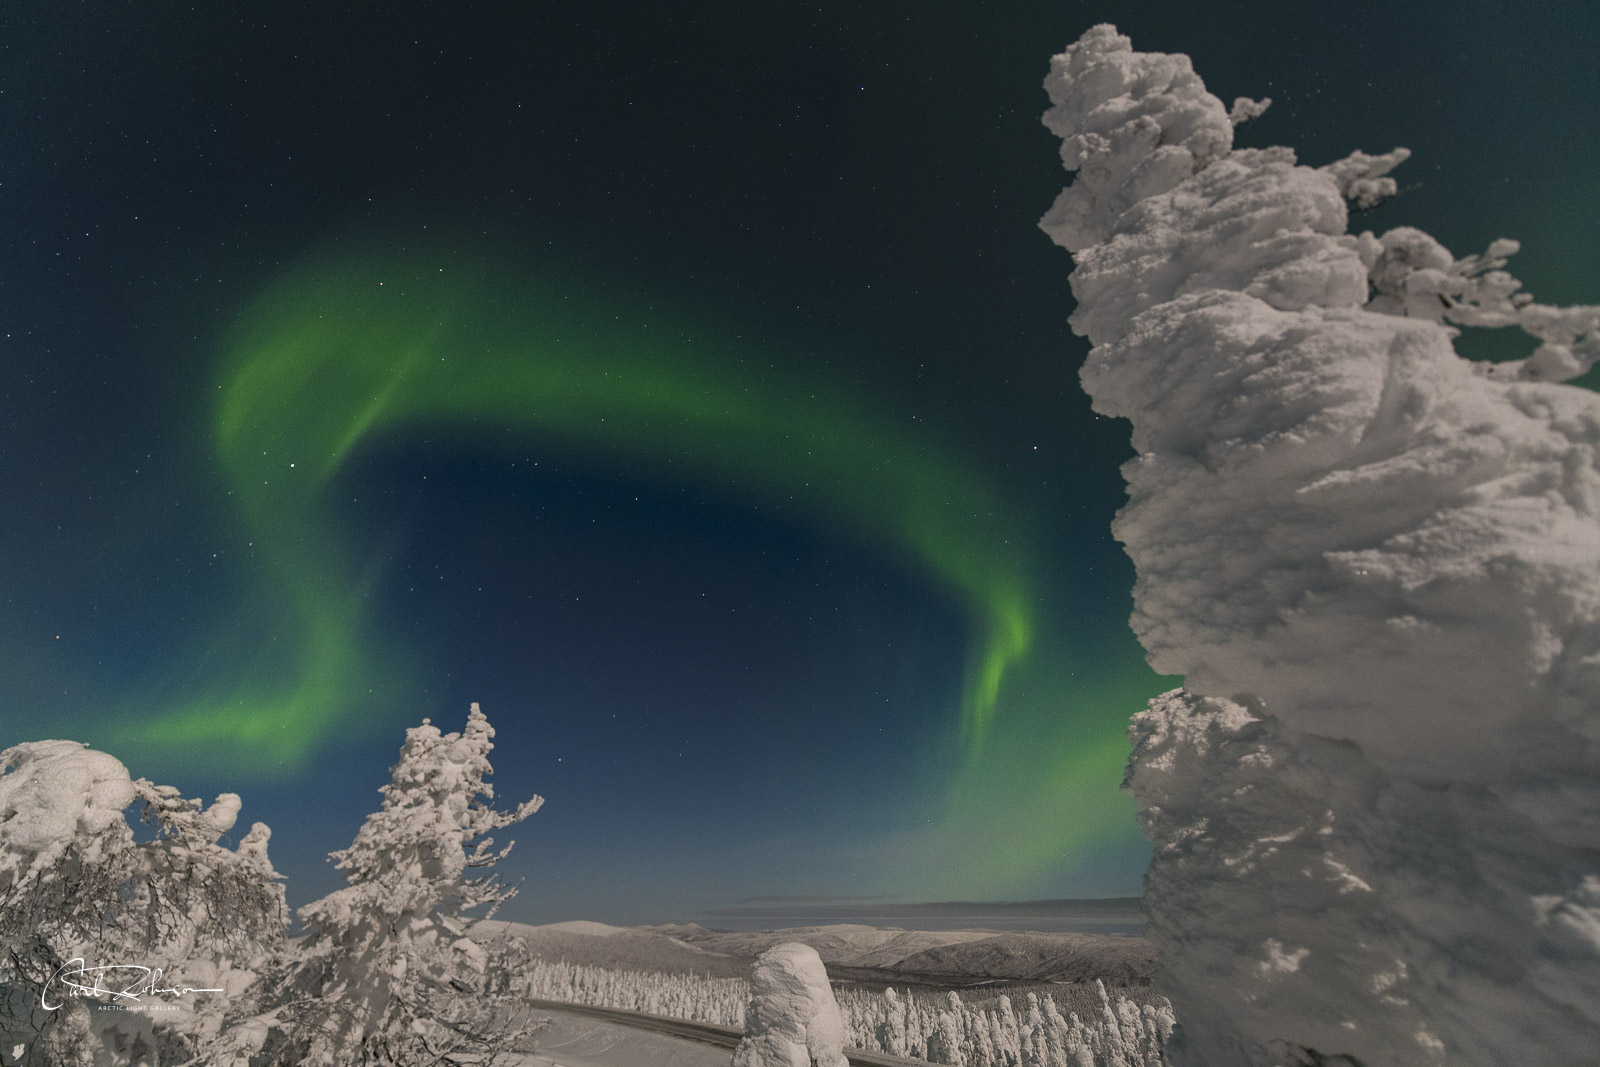 A curling swirl of aurora fills the sky over some snowy trees.